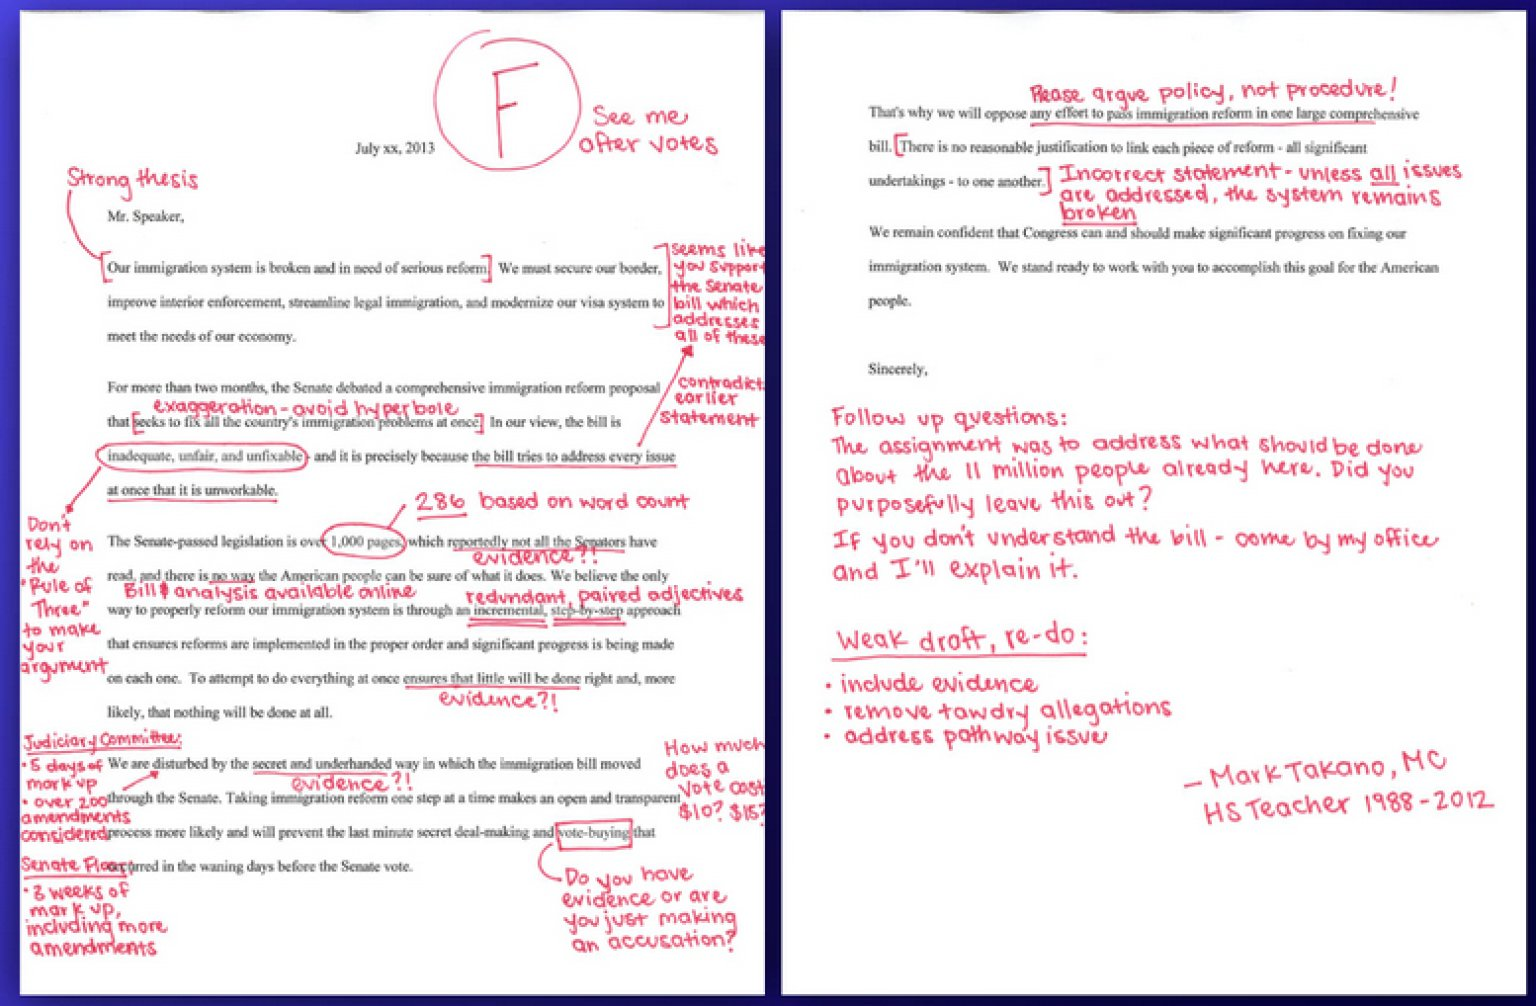 Rep Mark Takano Corrects Republican Letter Proves He